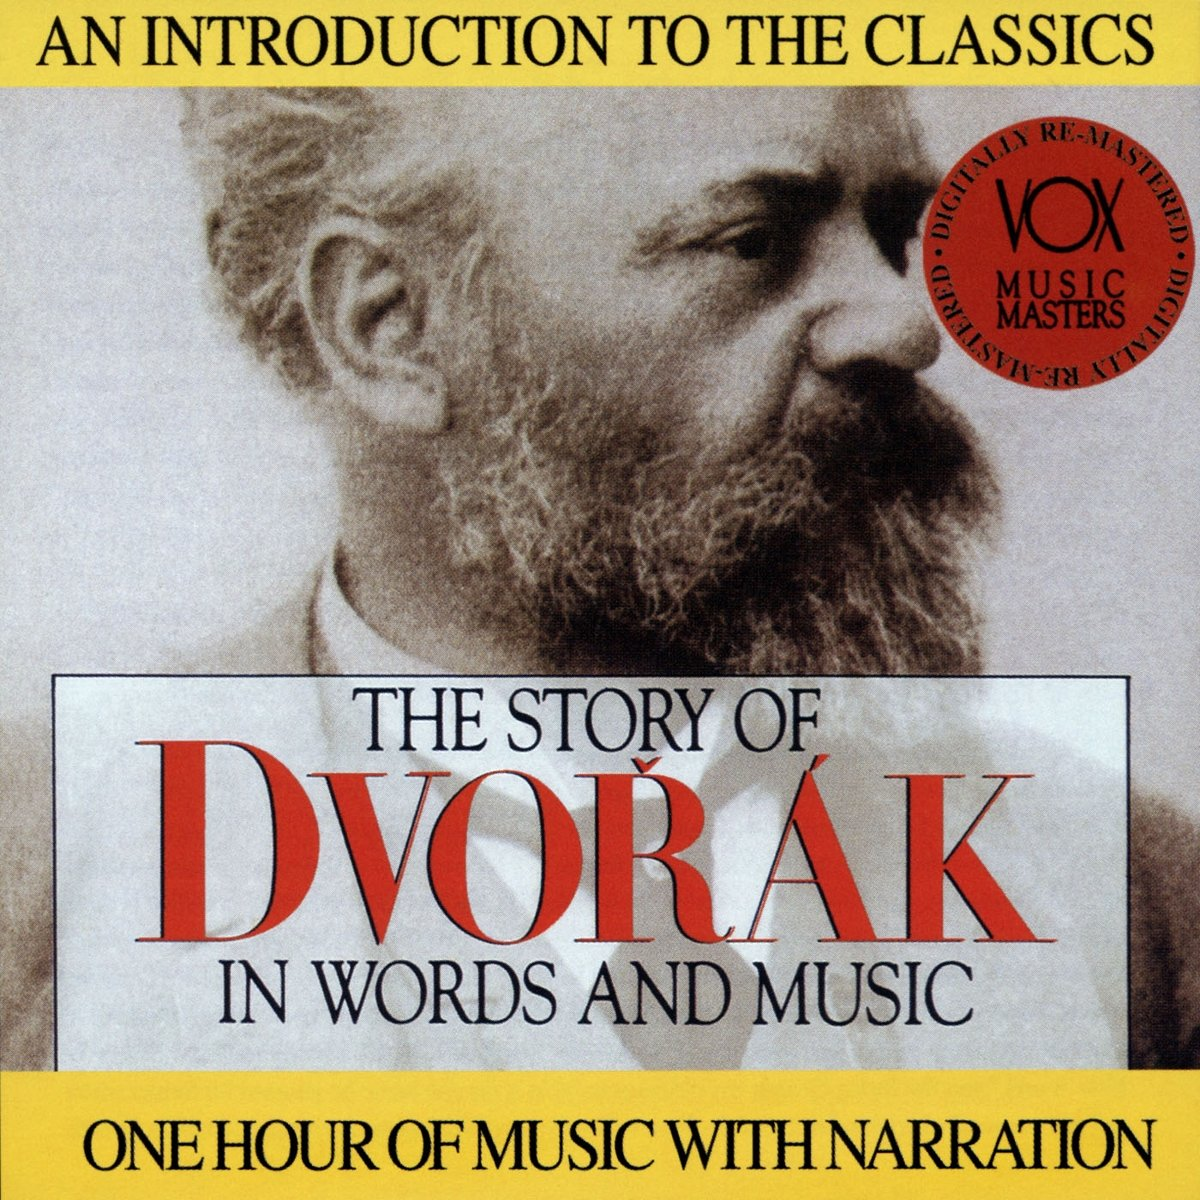 The Story of Dvorak in Words and Music by Vox (Classical)